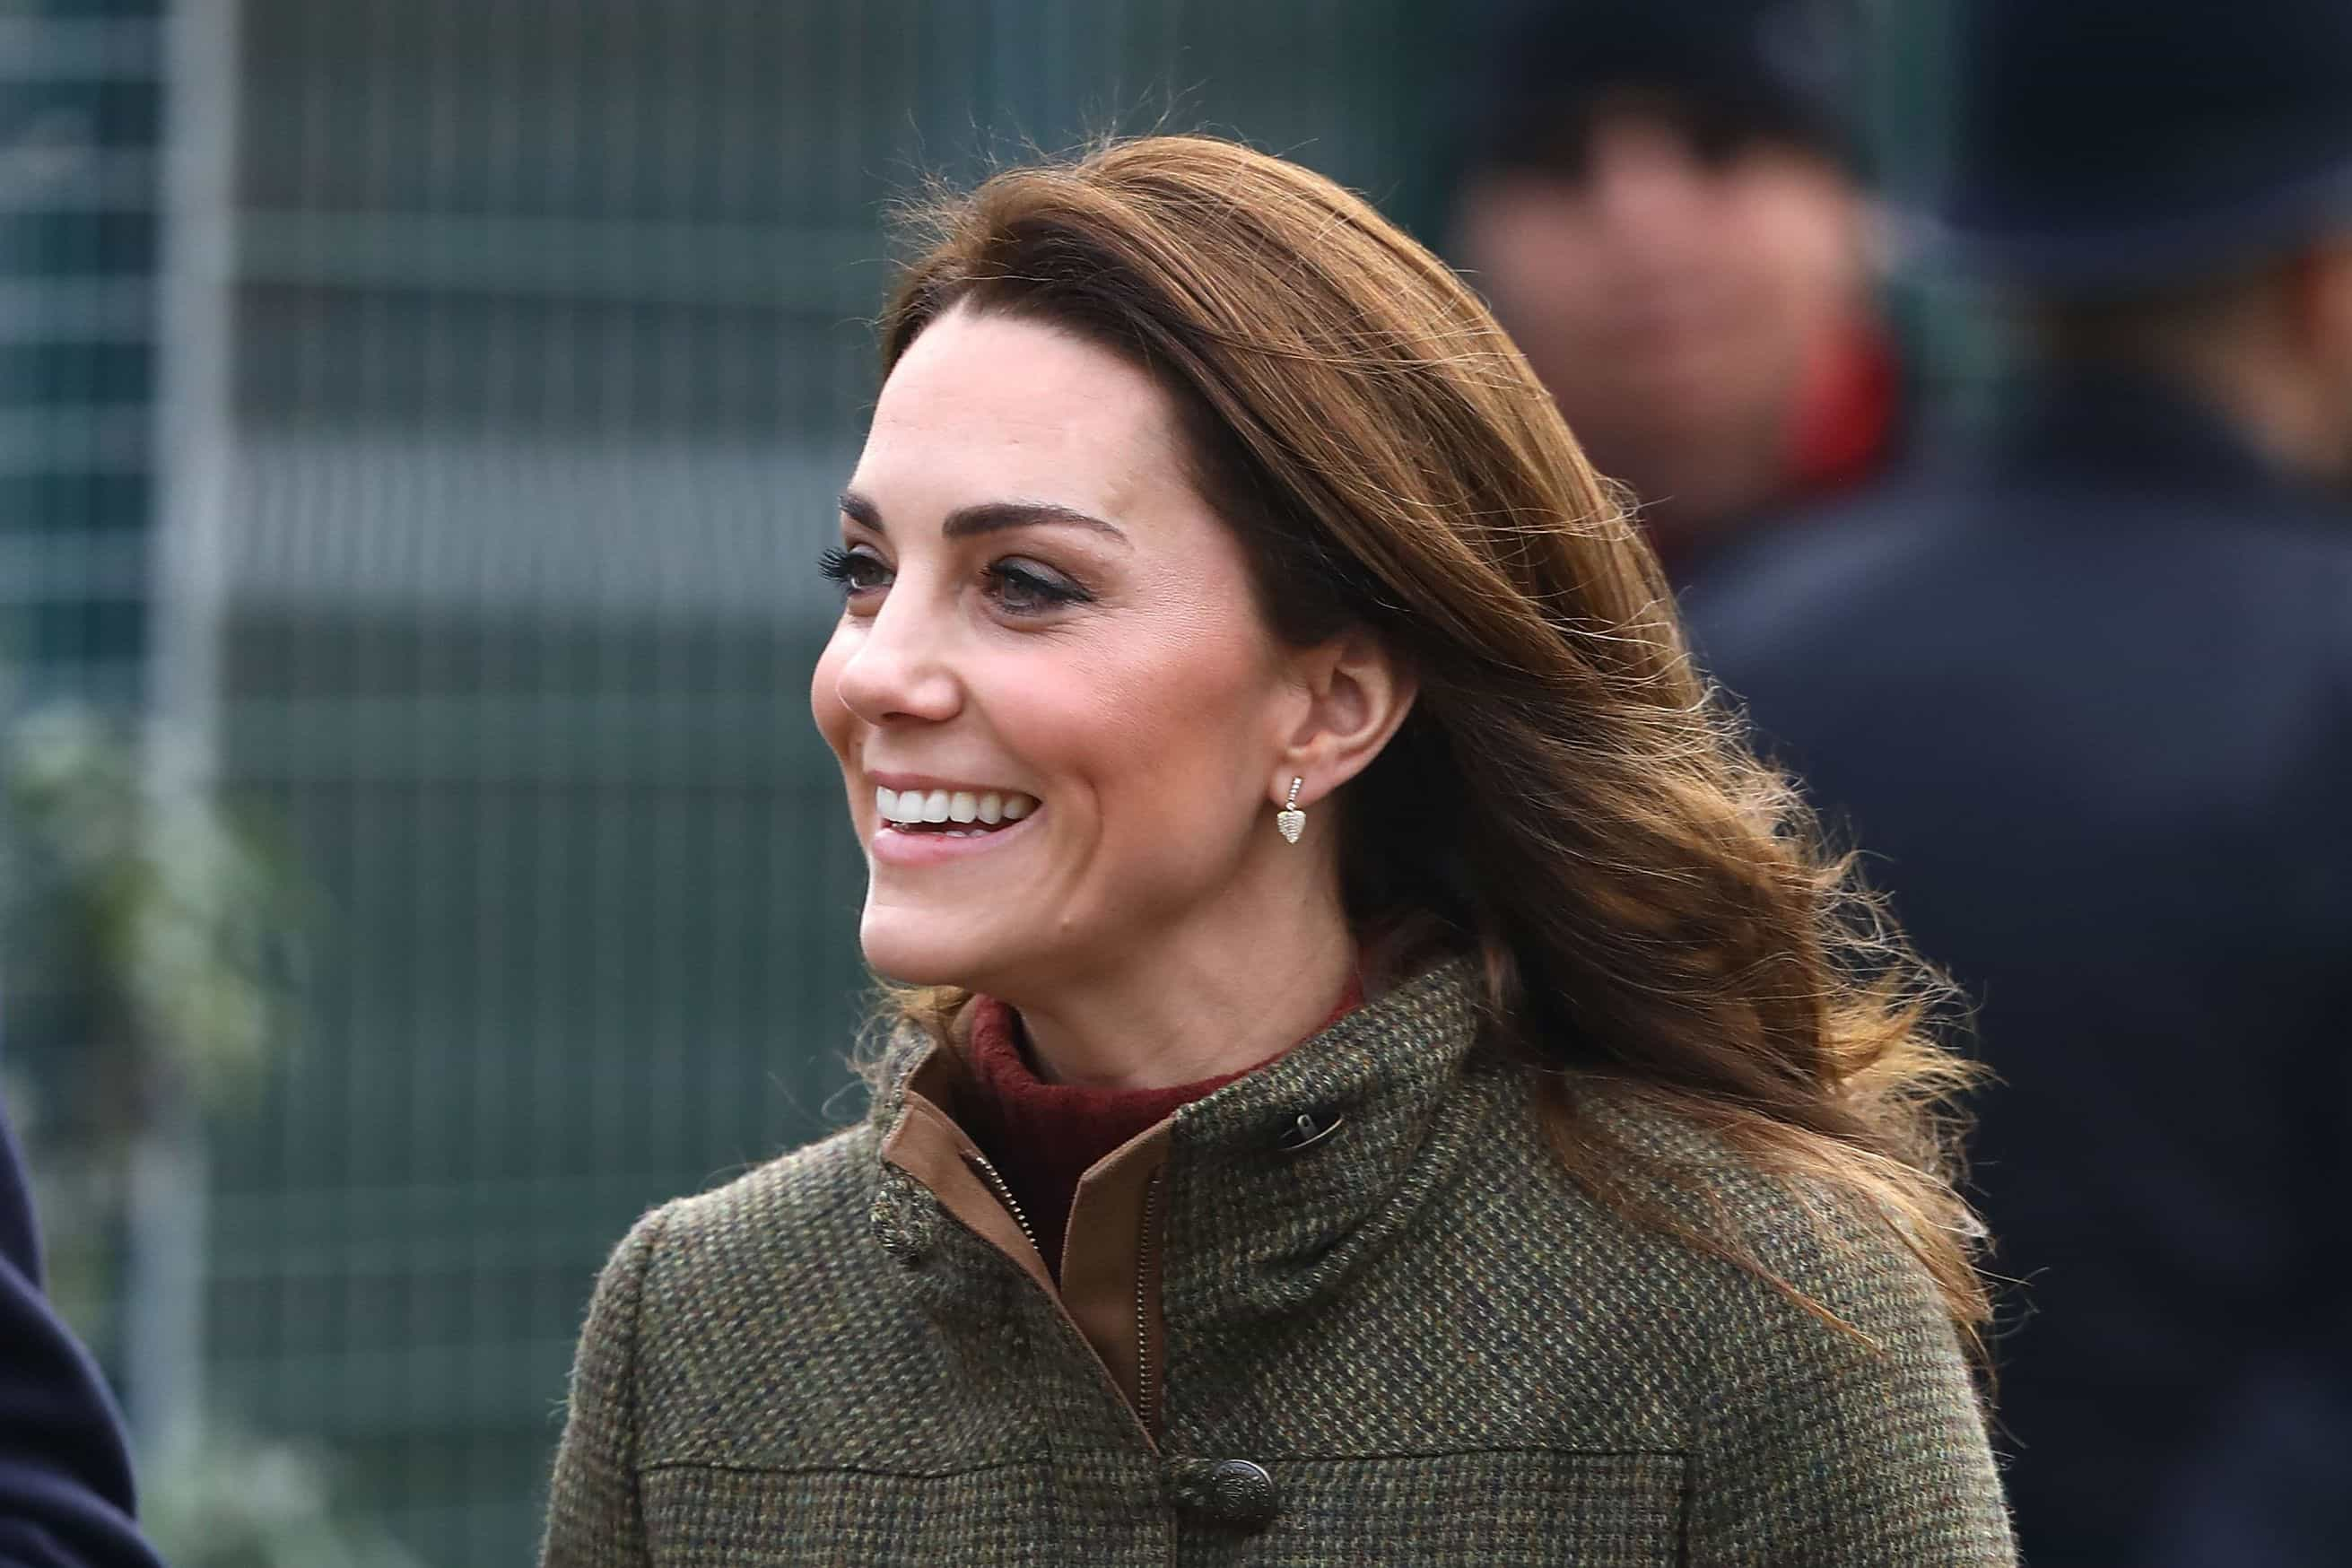 Mais descontraída que nunca! Kate Middleton de botas rasas e look casual